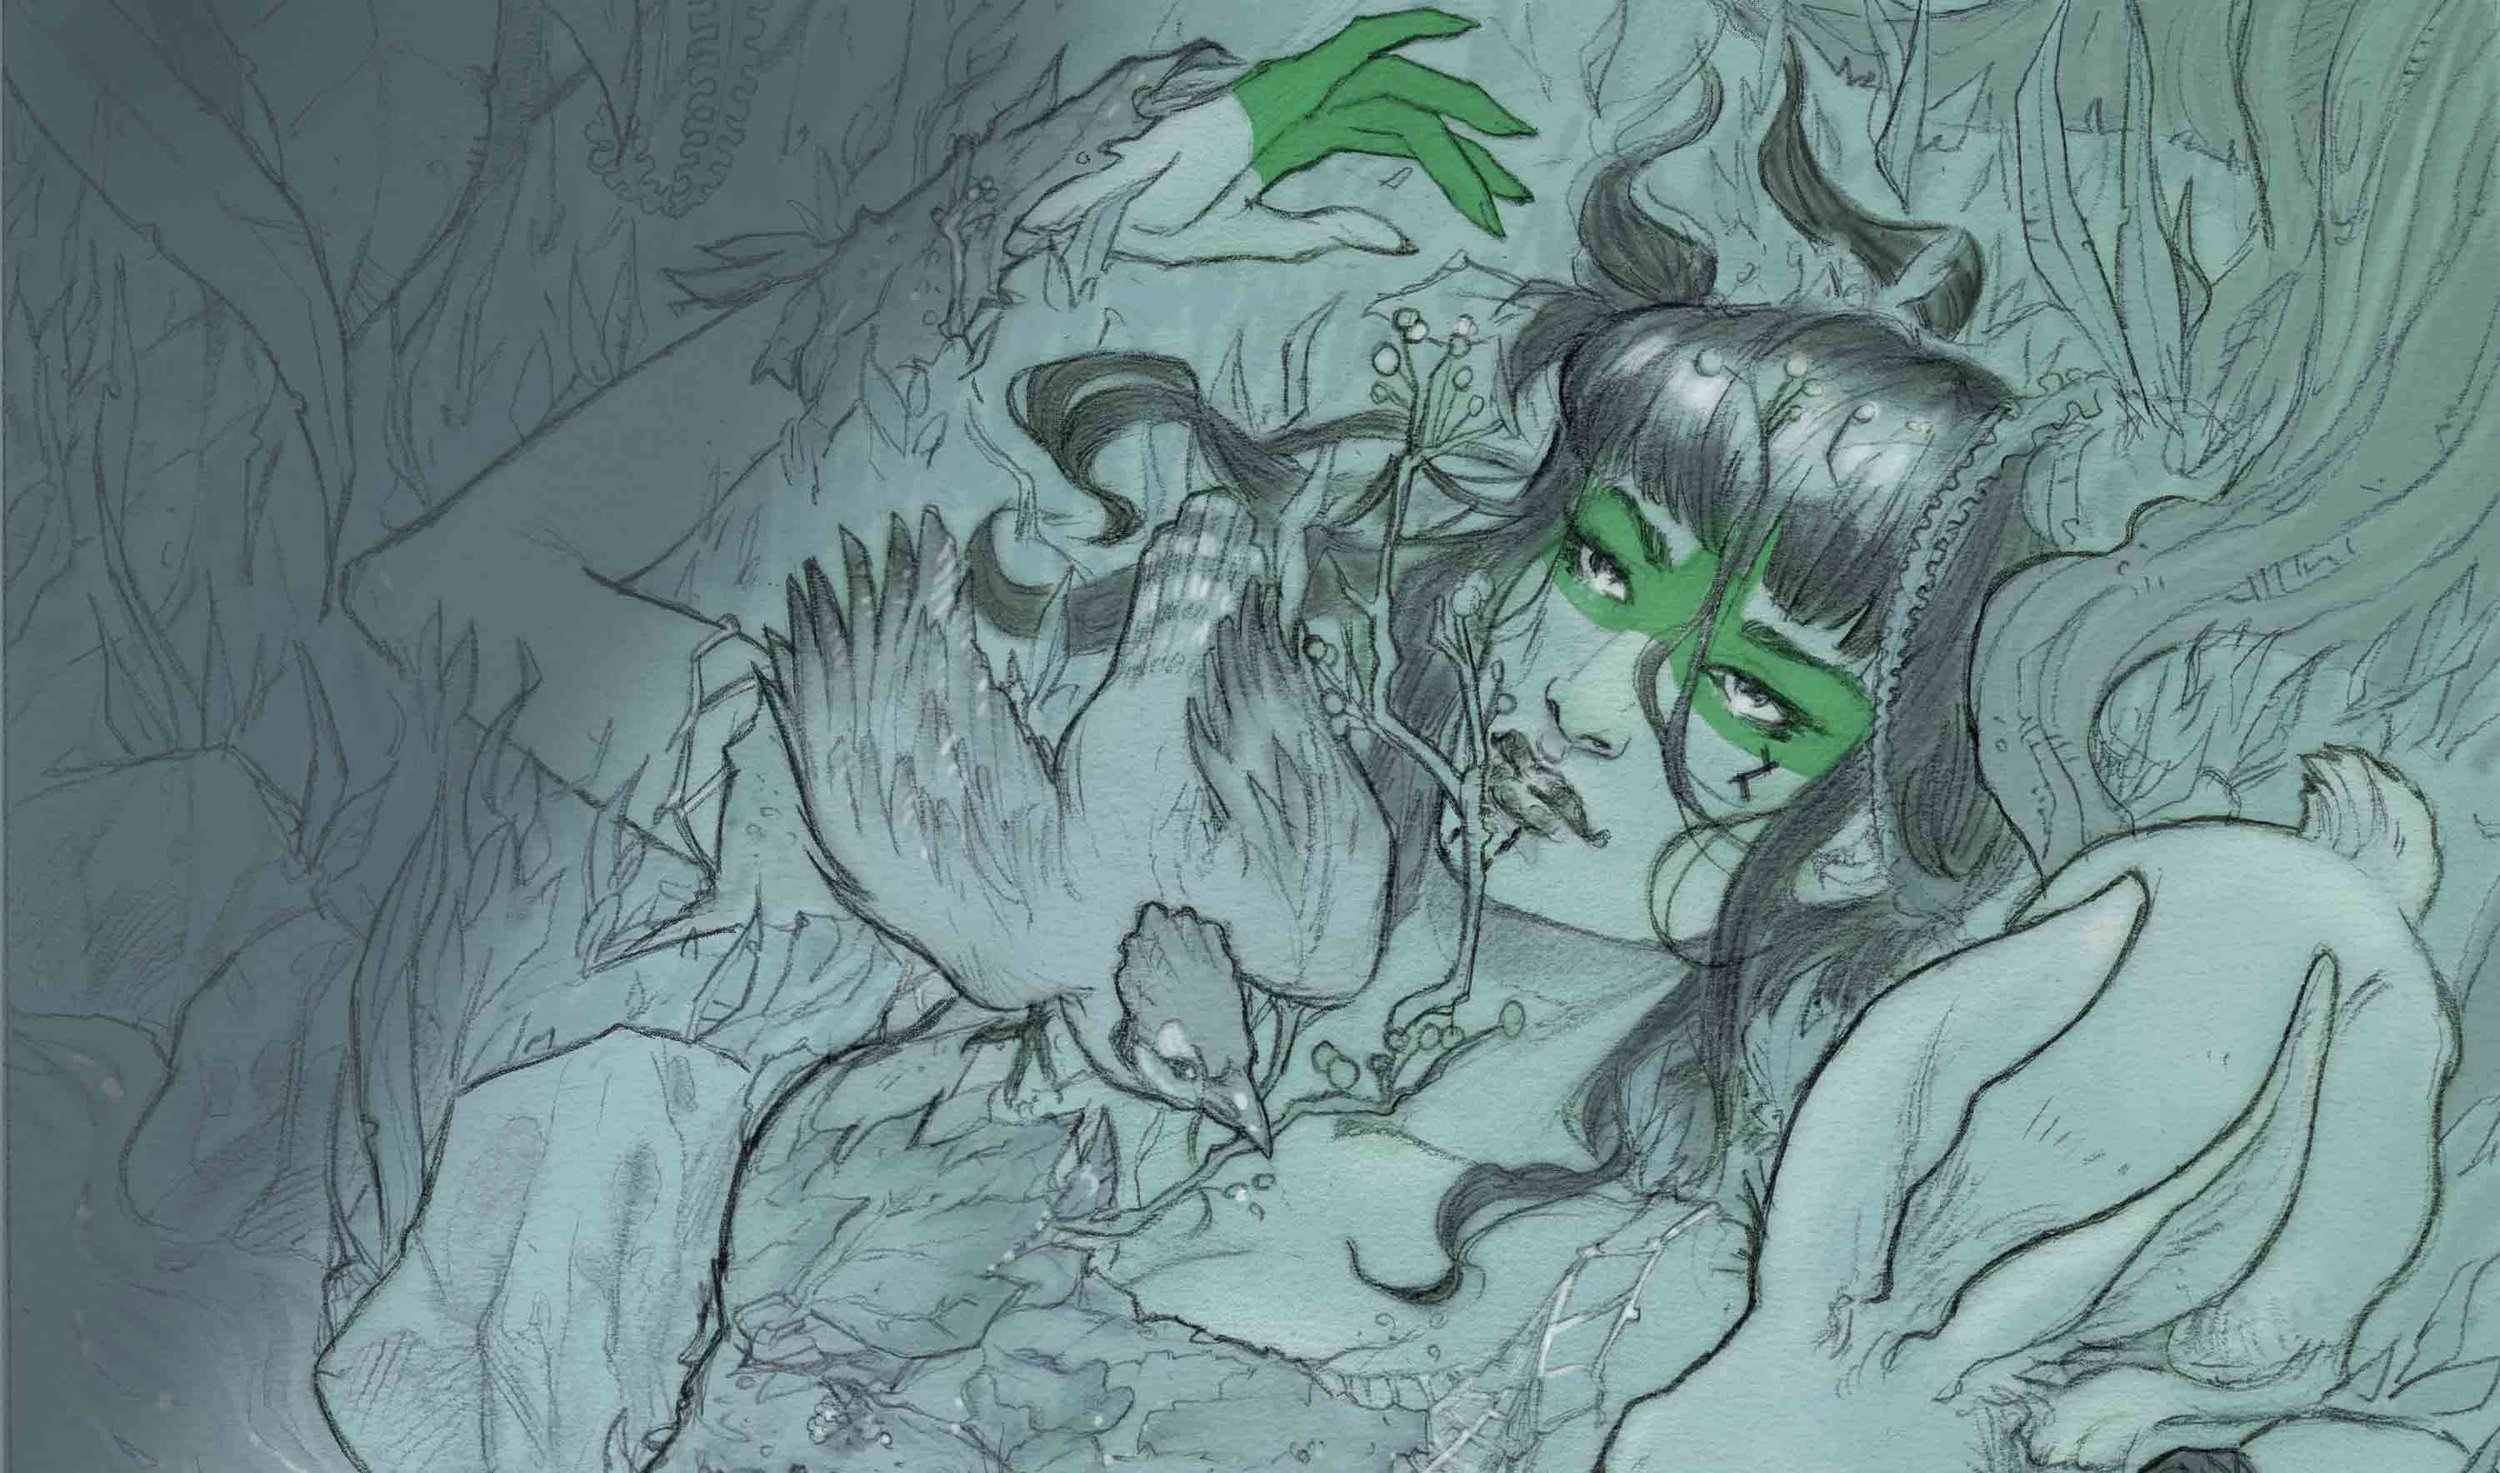 NIRMALA'S TALE See who Nirmala is in Iacobella's dreams. Discover her muse, fantasy and joy in her long journey through epic illustrations and poetry - By: Silvia Califano